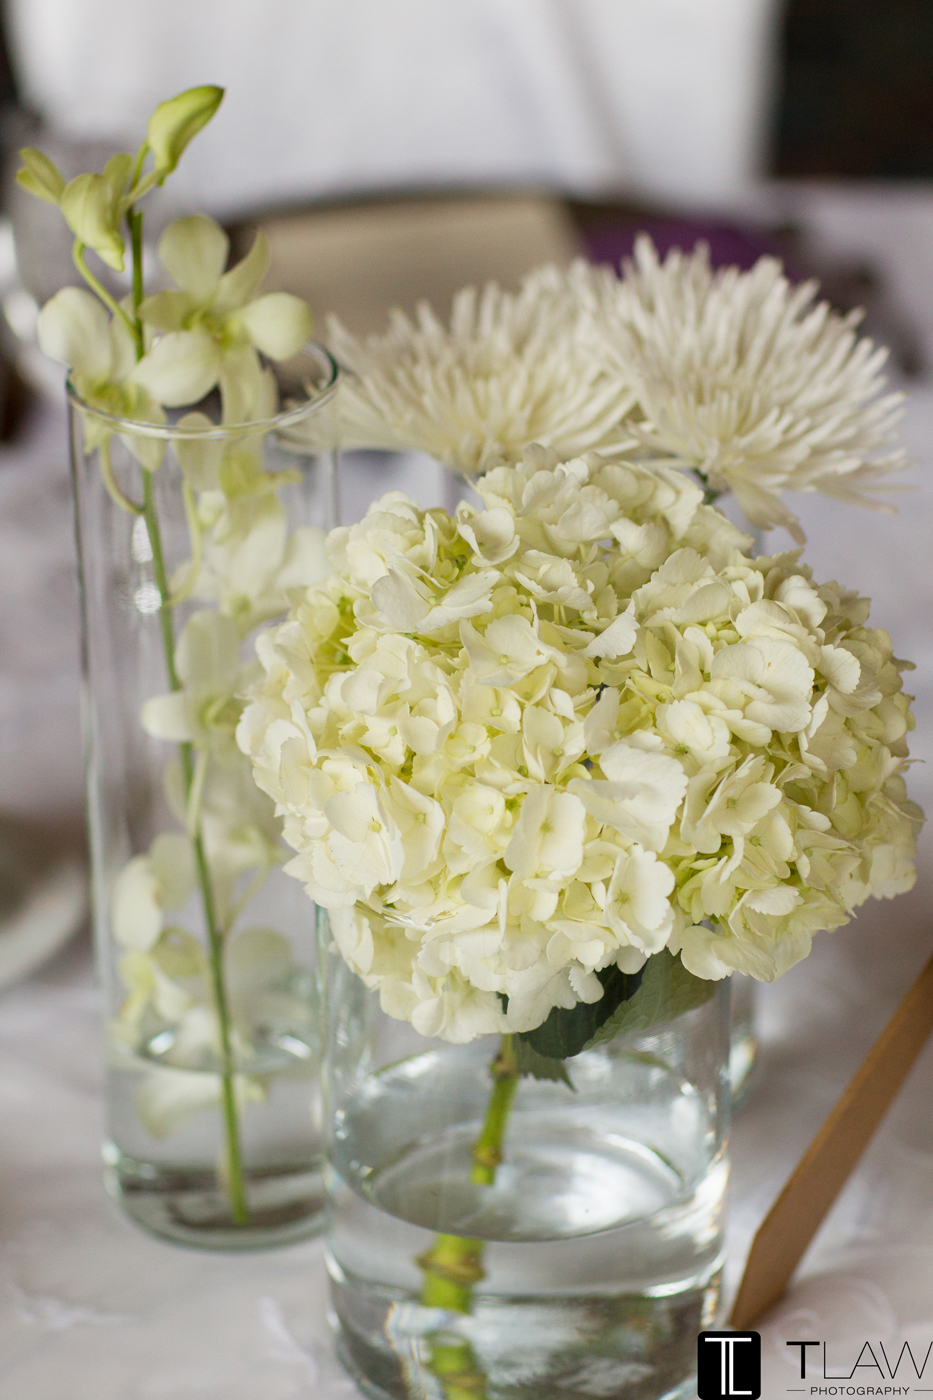 Simple Centerpiece of Hydrangea, Dendrobium Orchids and Spider Mums.